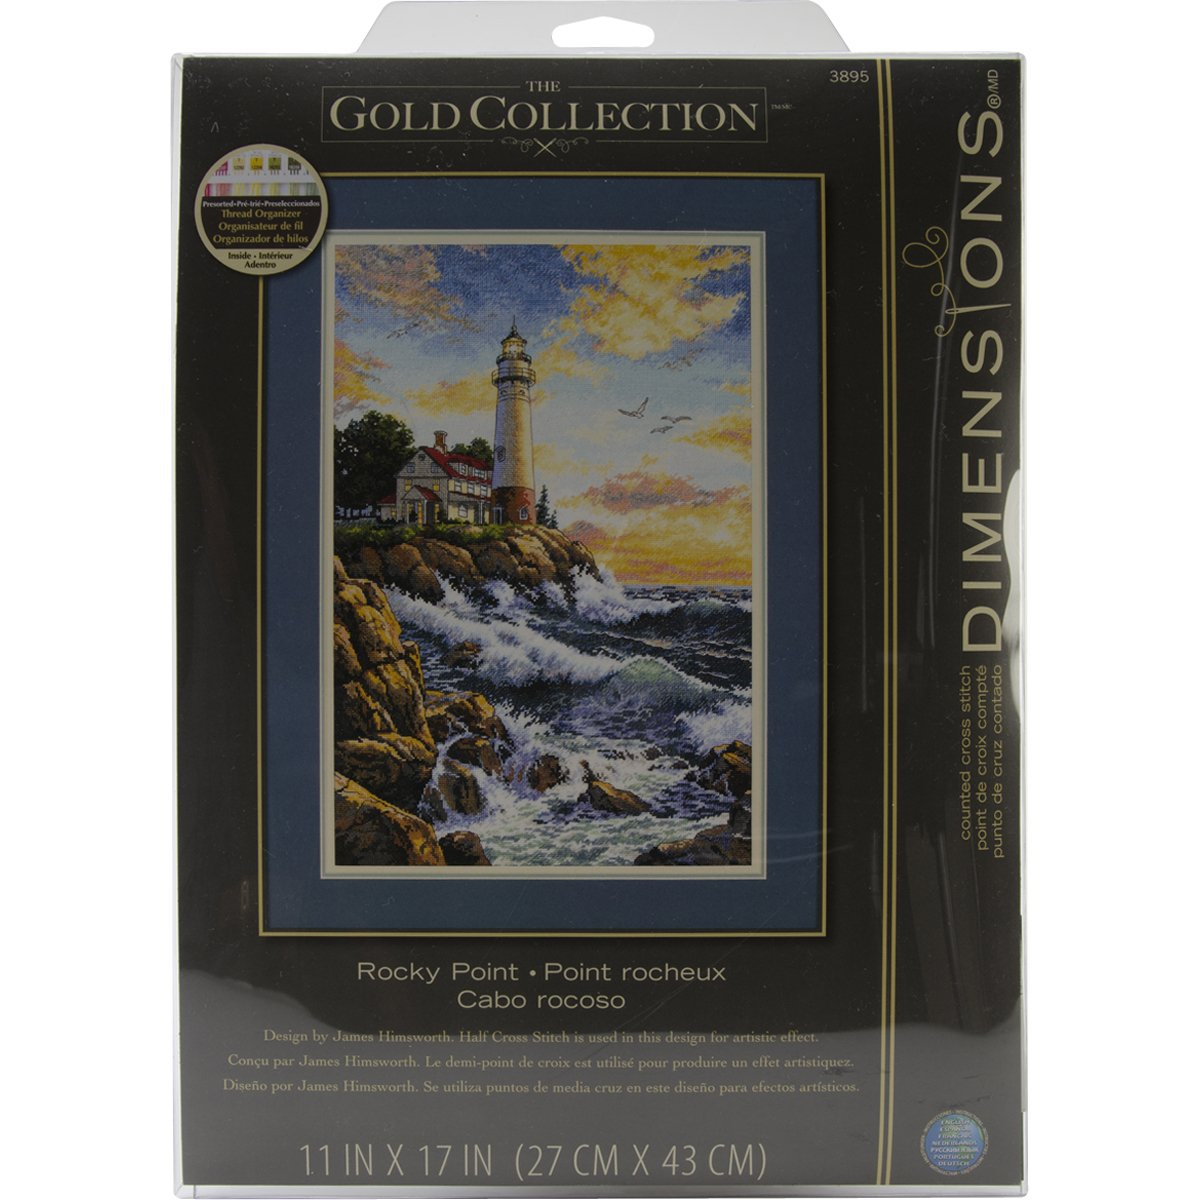 Counted Cross Stitch Pattern Needlework embroidery Lighthouse on Rocky Point